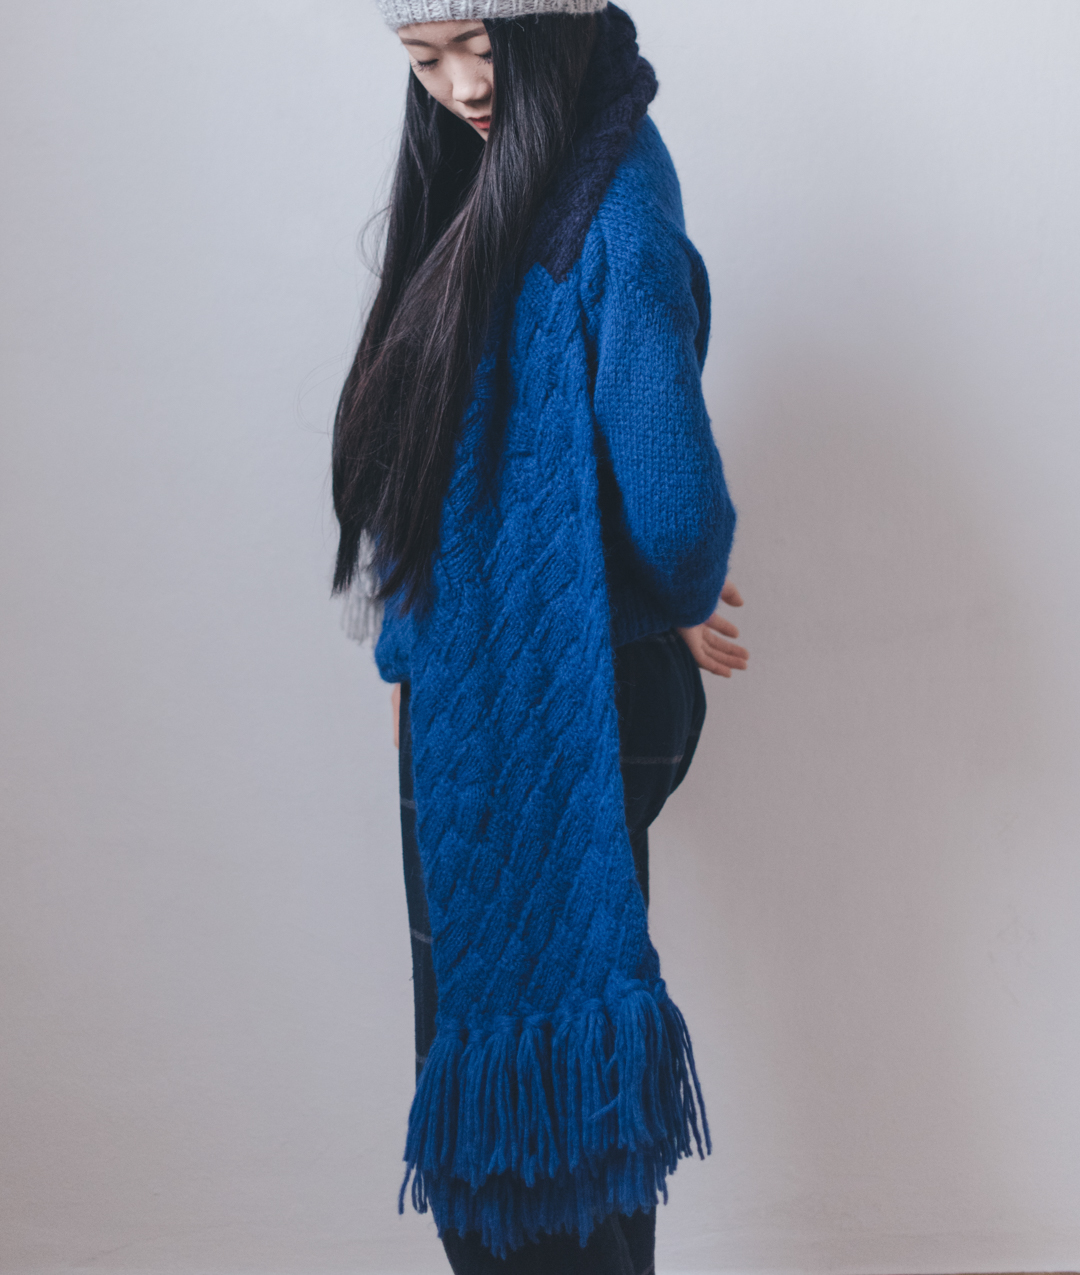 Scarves and Snoods - Wool - QUEEN SCARF - 1